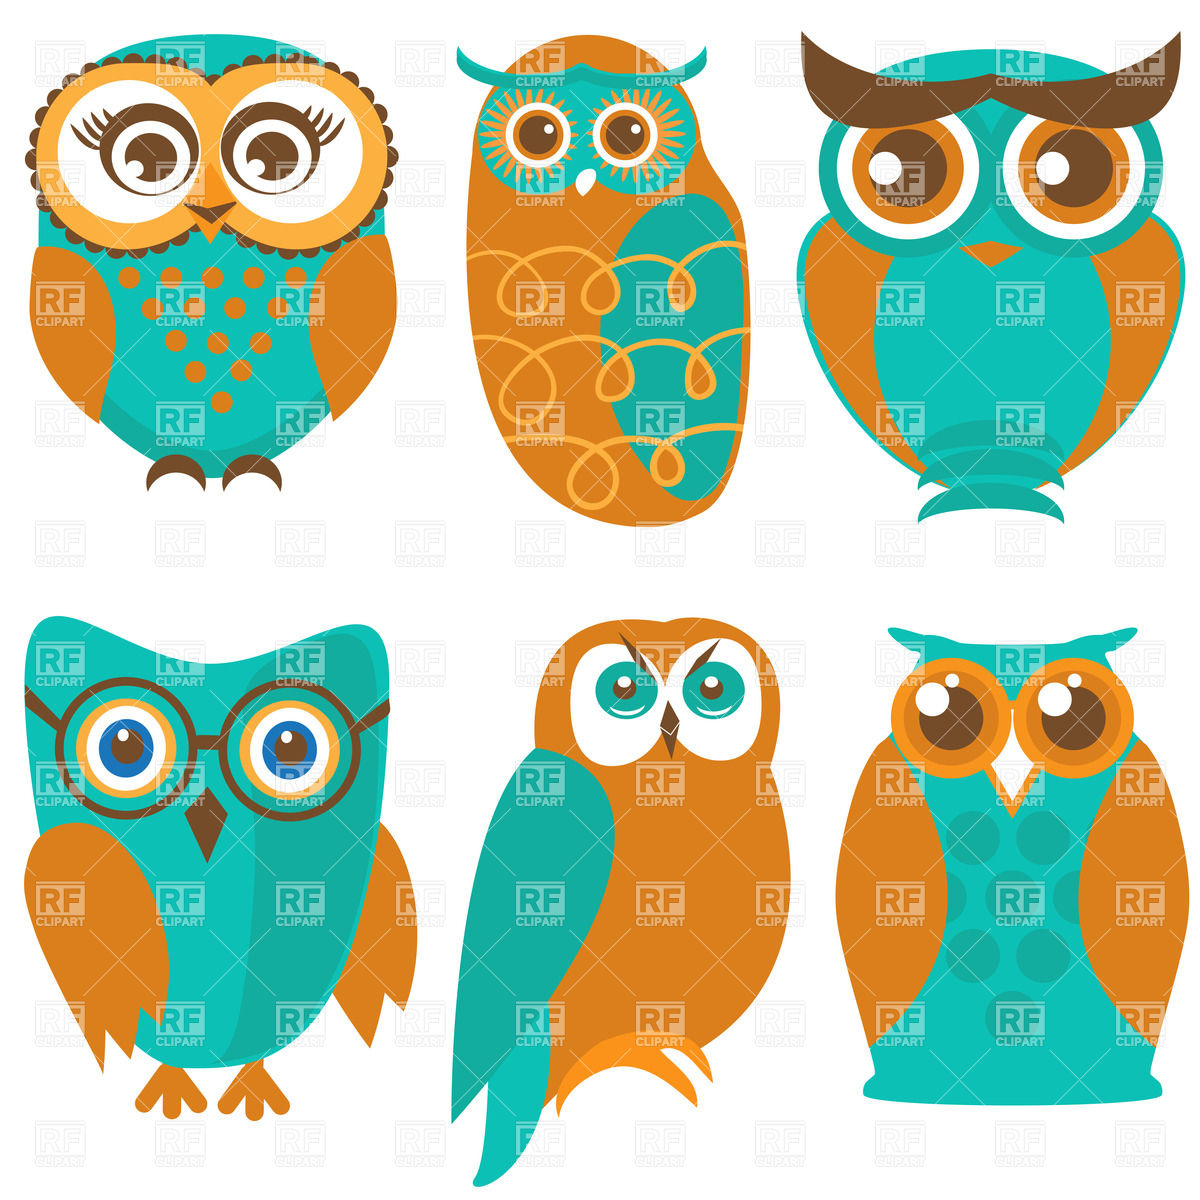 Royalty Free Owl Clipart.